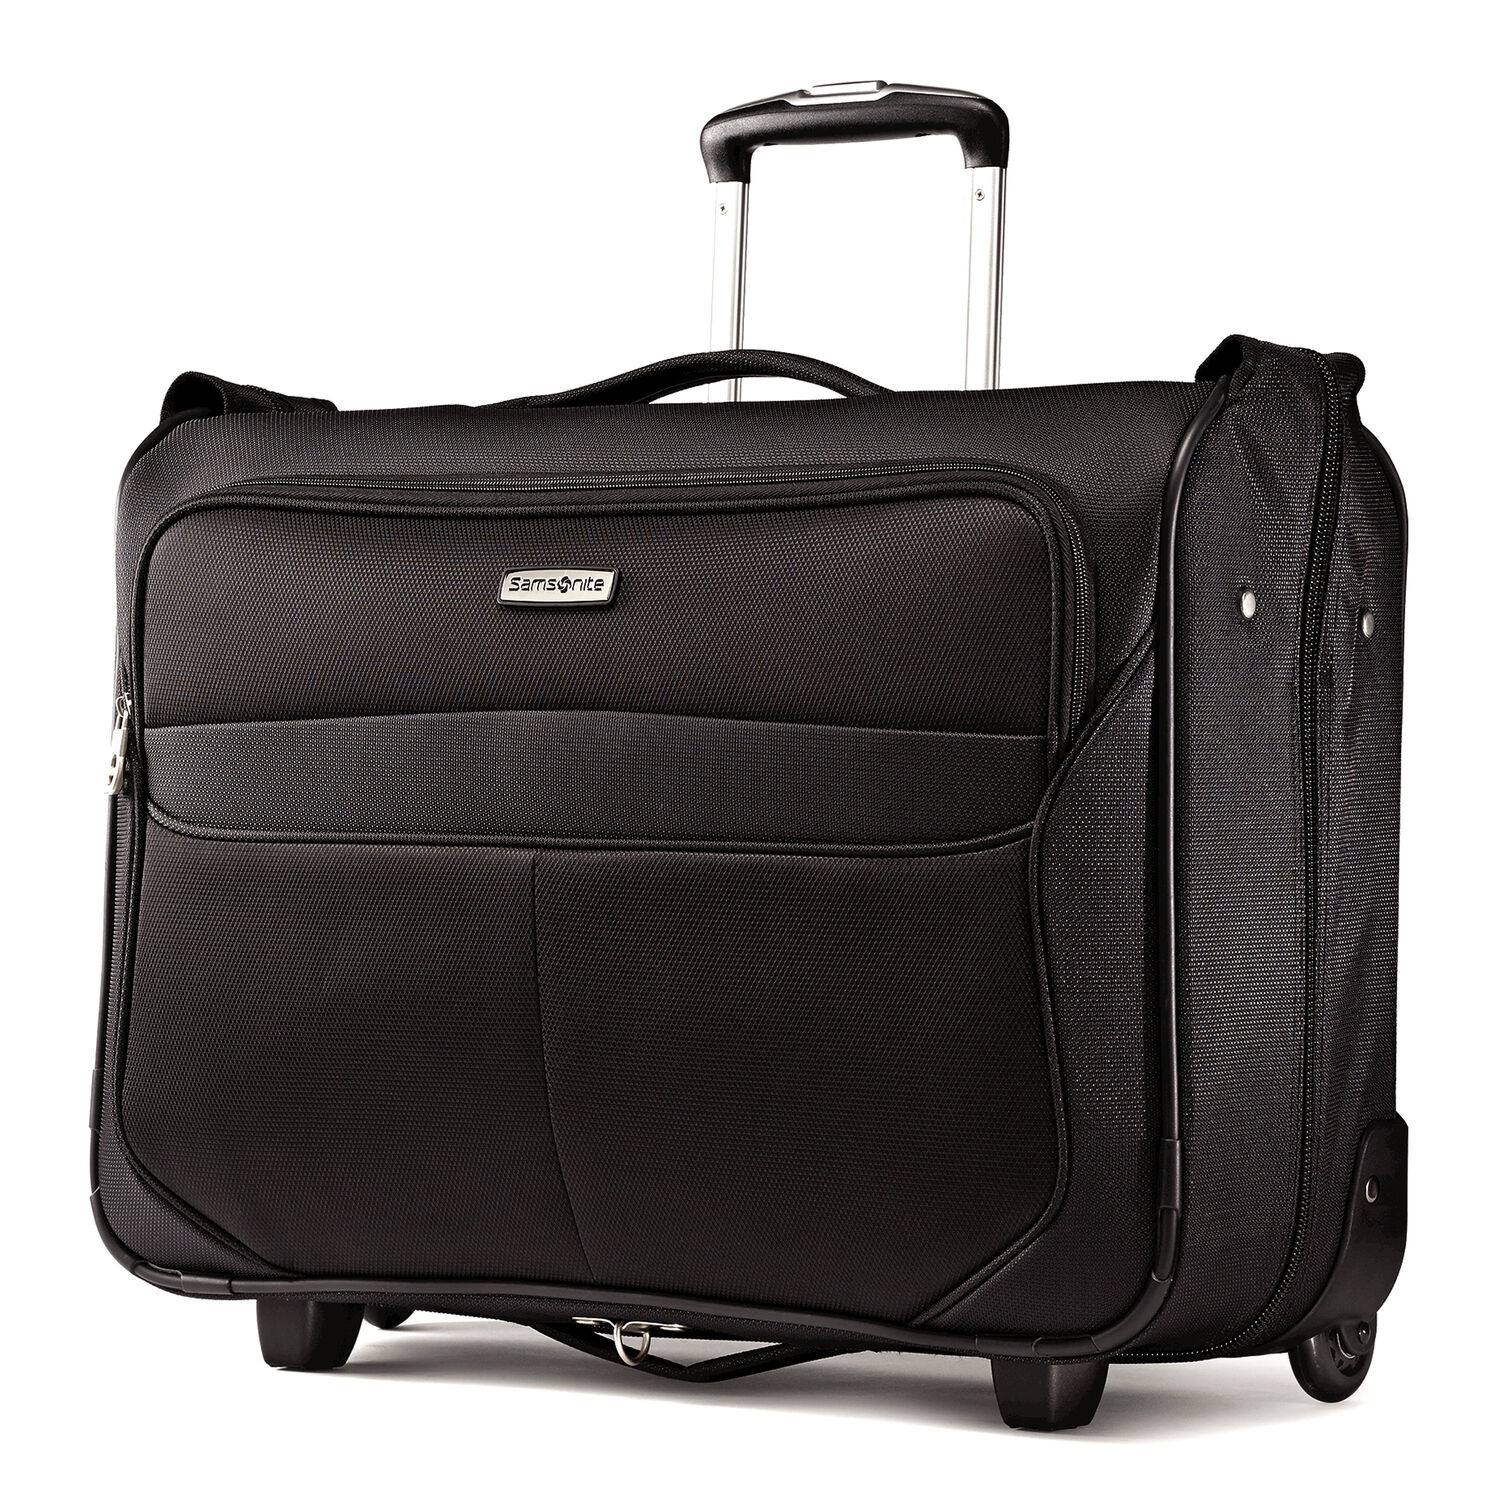 202054665d Samsonite Lift 2 Carry-On Wheeled Garment Bag in the color Black.